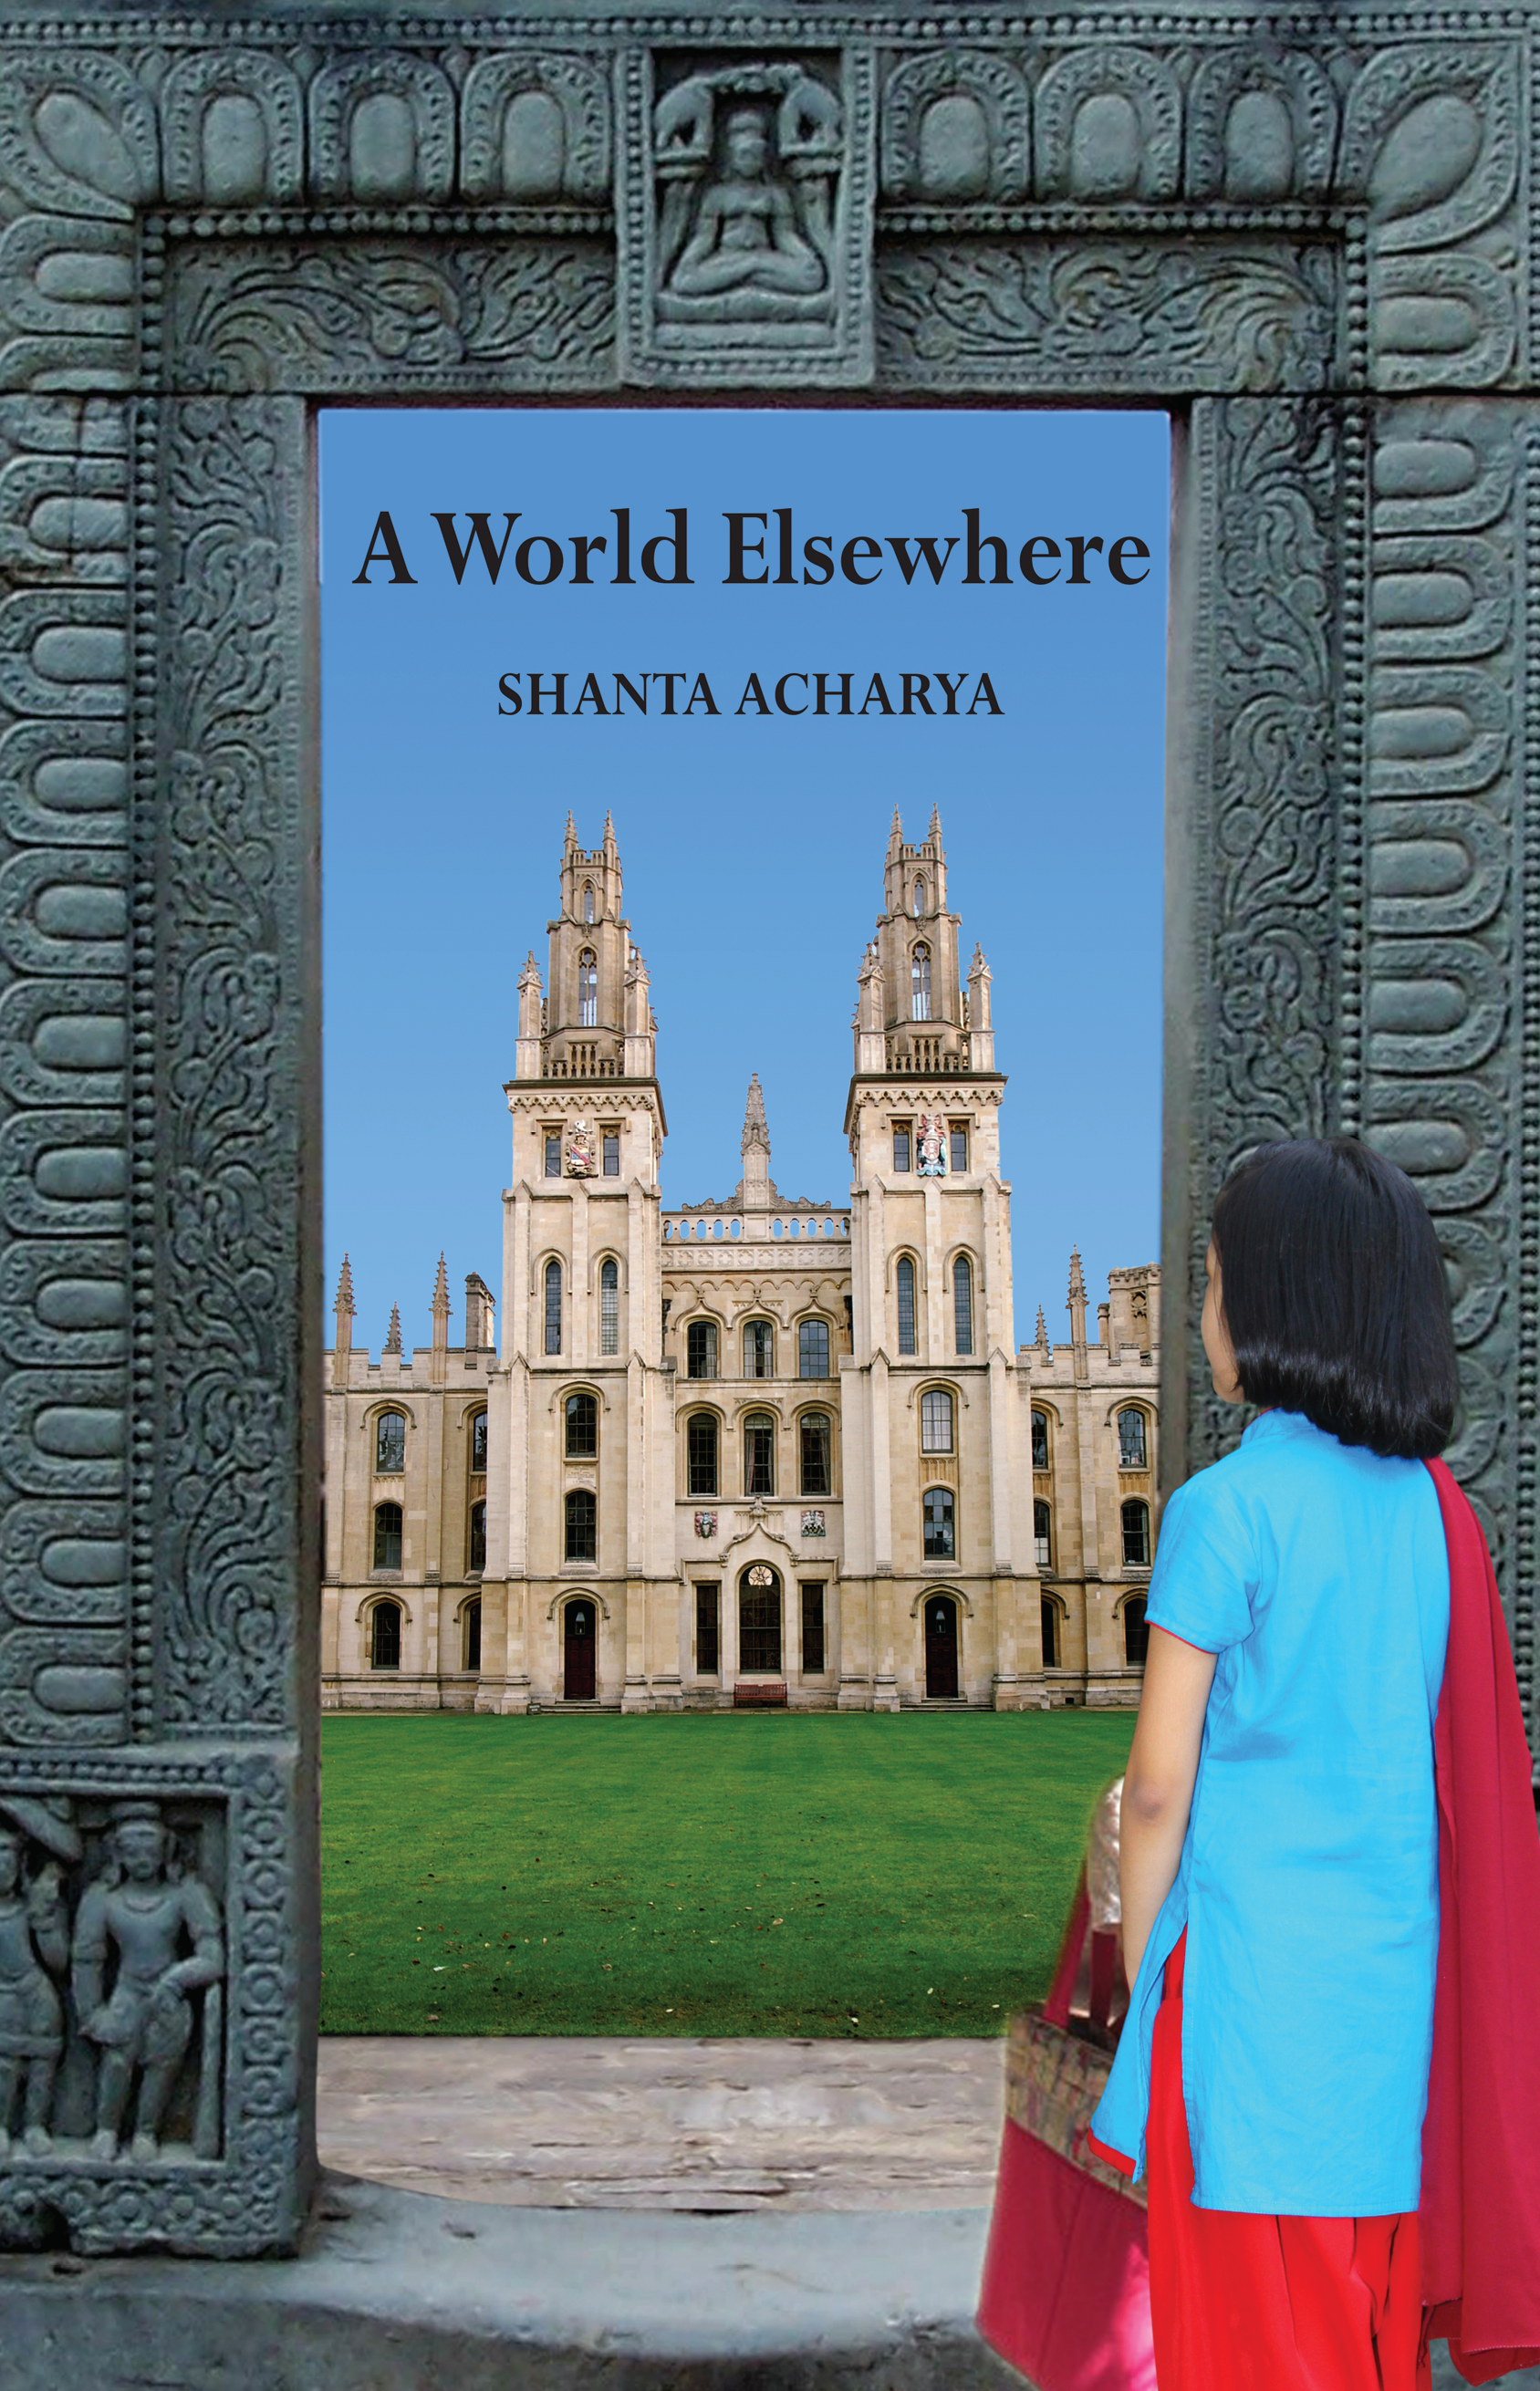 A World Elsewhere by Shanta Acharya.  Review by Mona Dash